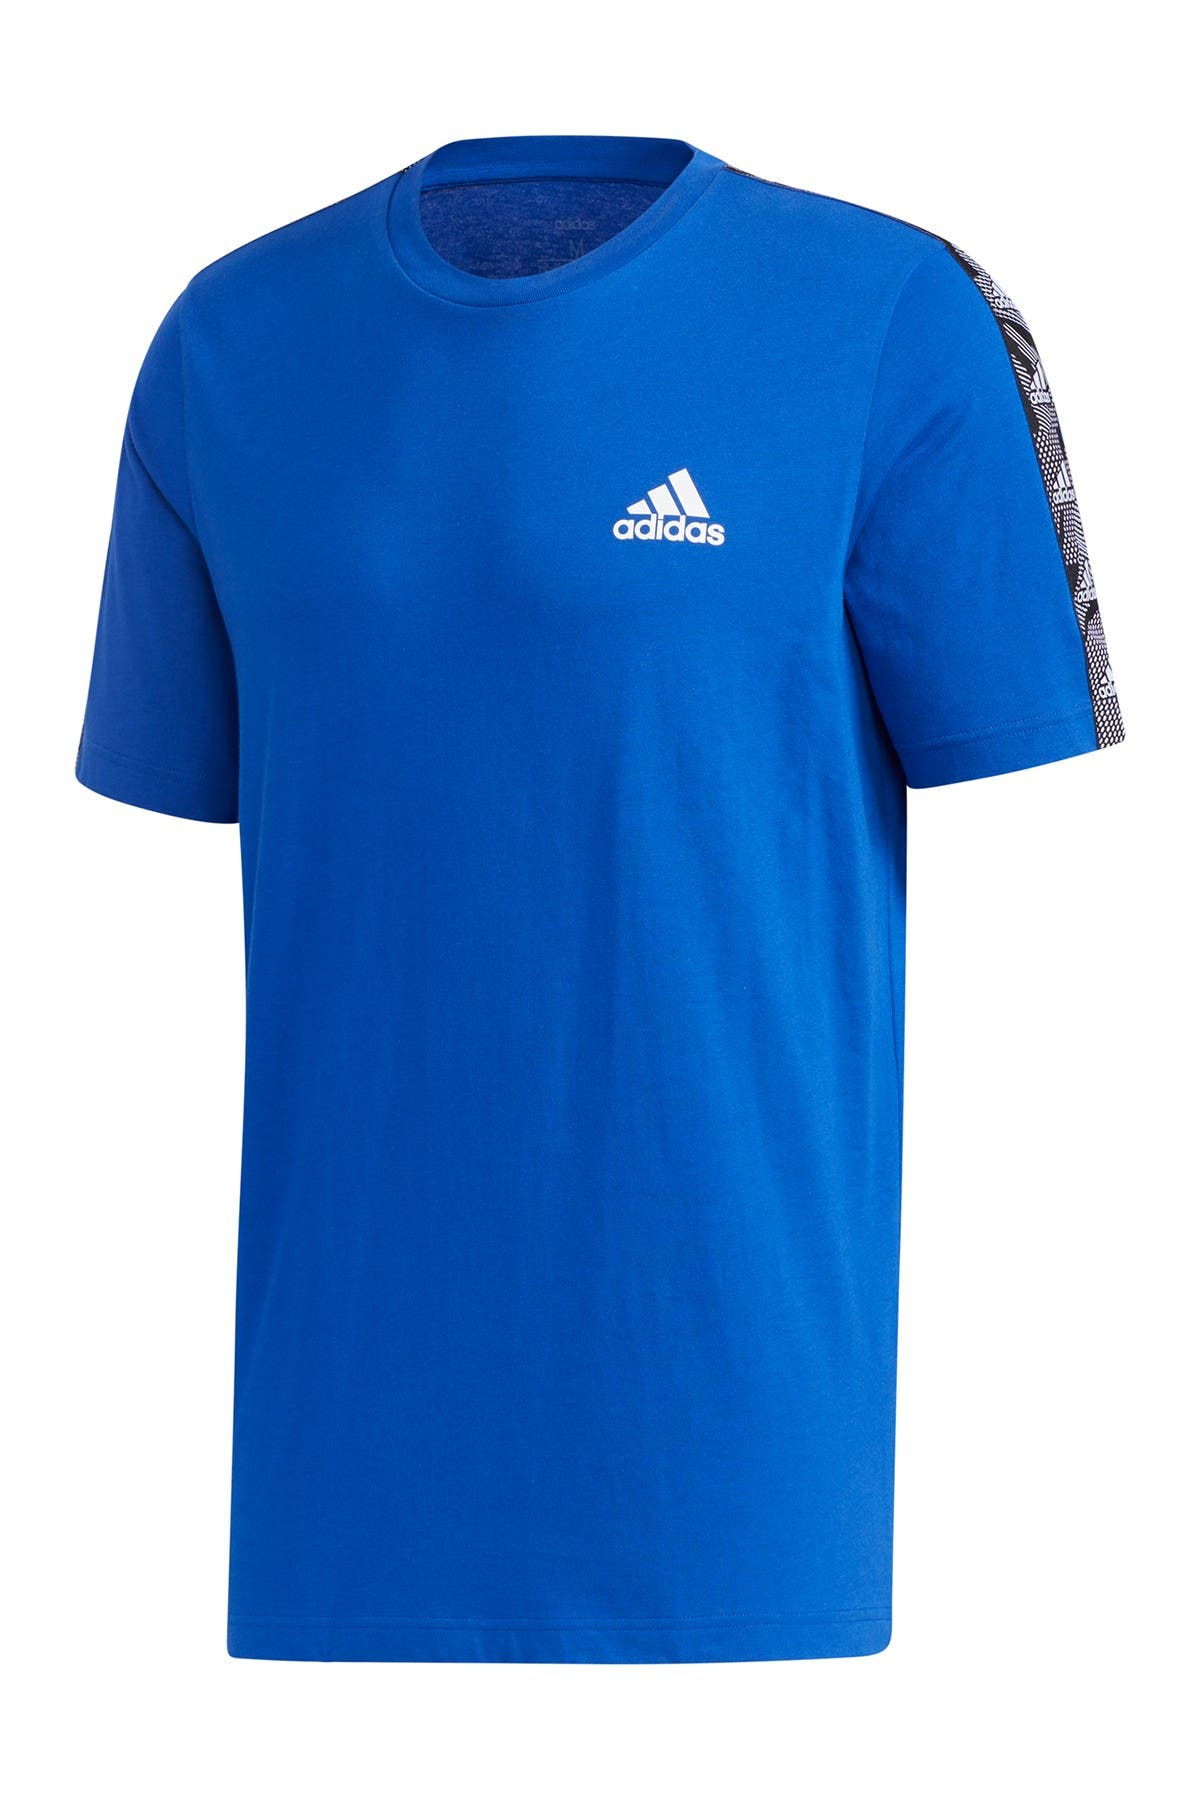 Image of adidas Essentials Tape T-Shirt